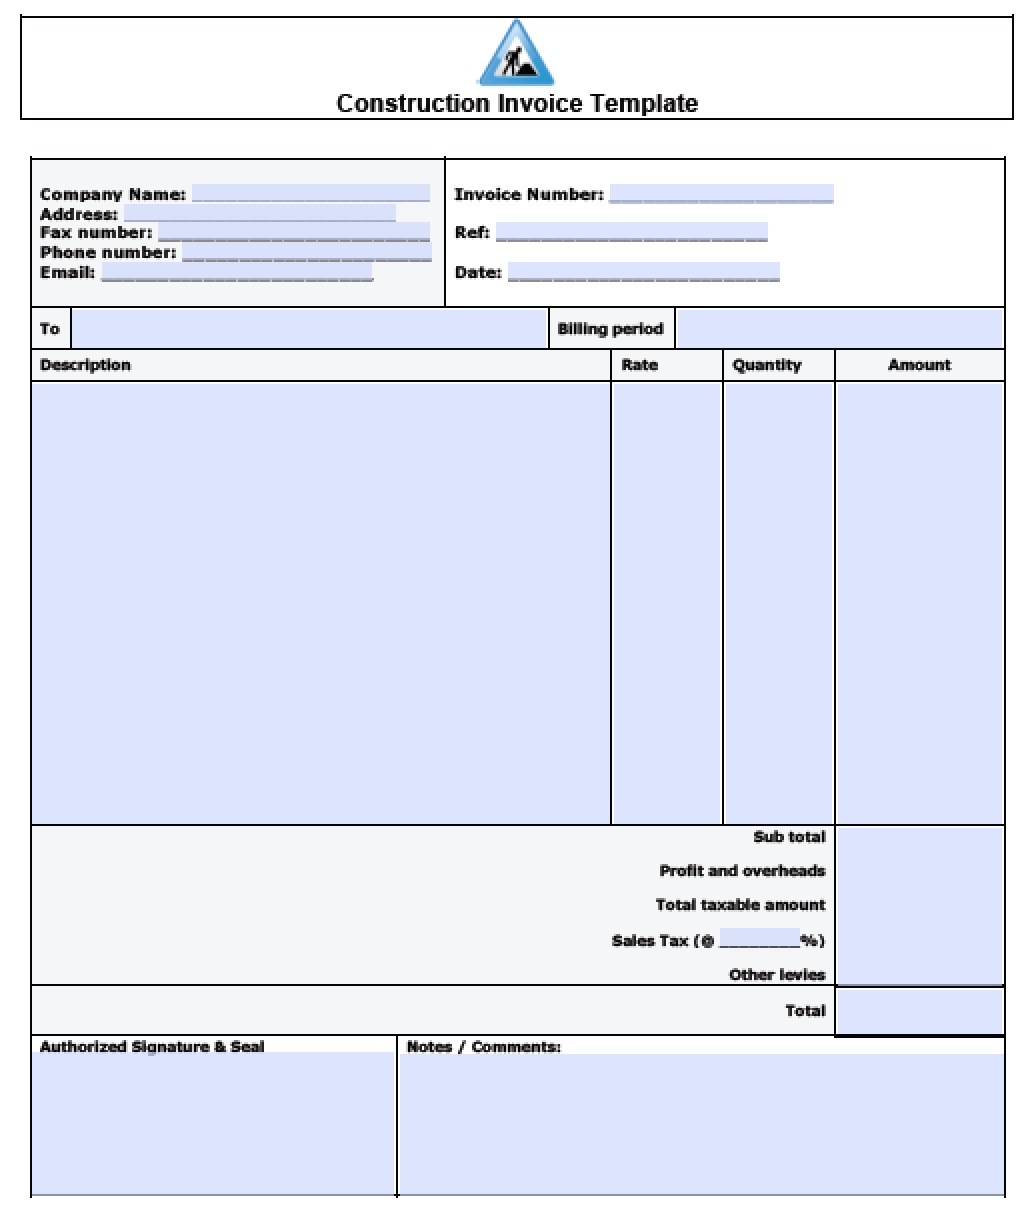 carpenter invoice template word  Free Construction Invoice Template | Excel | PDF | Word (.doc)